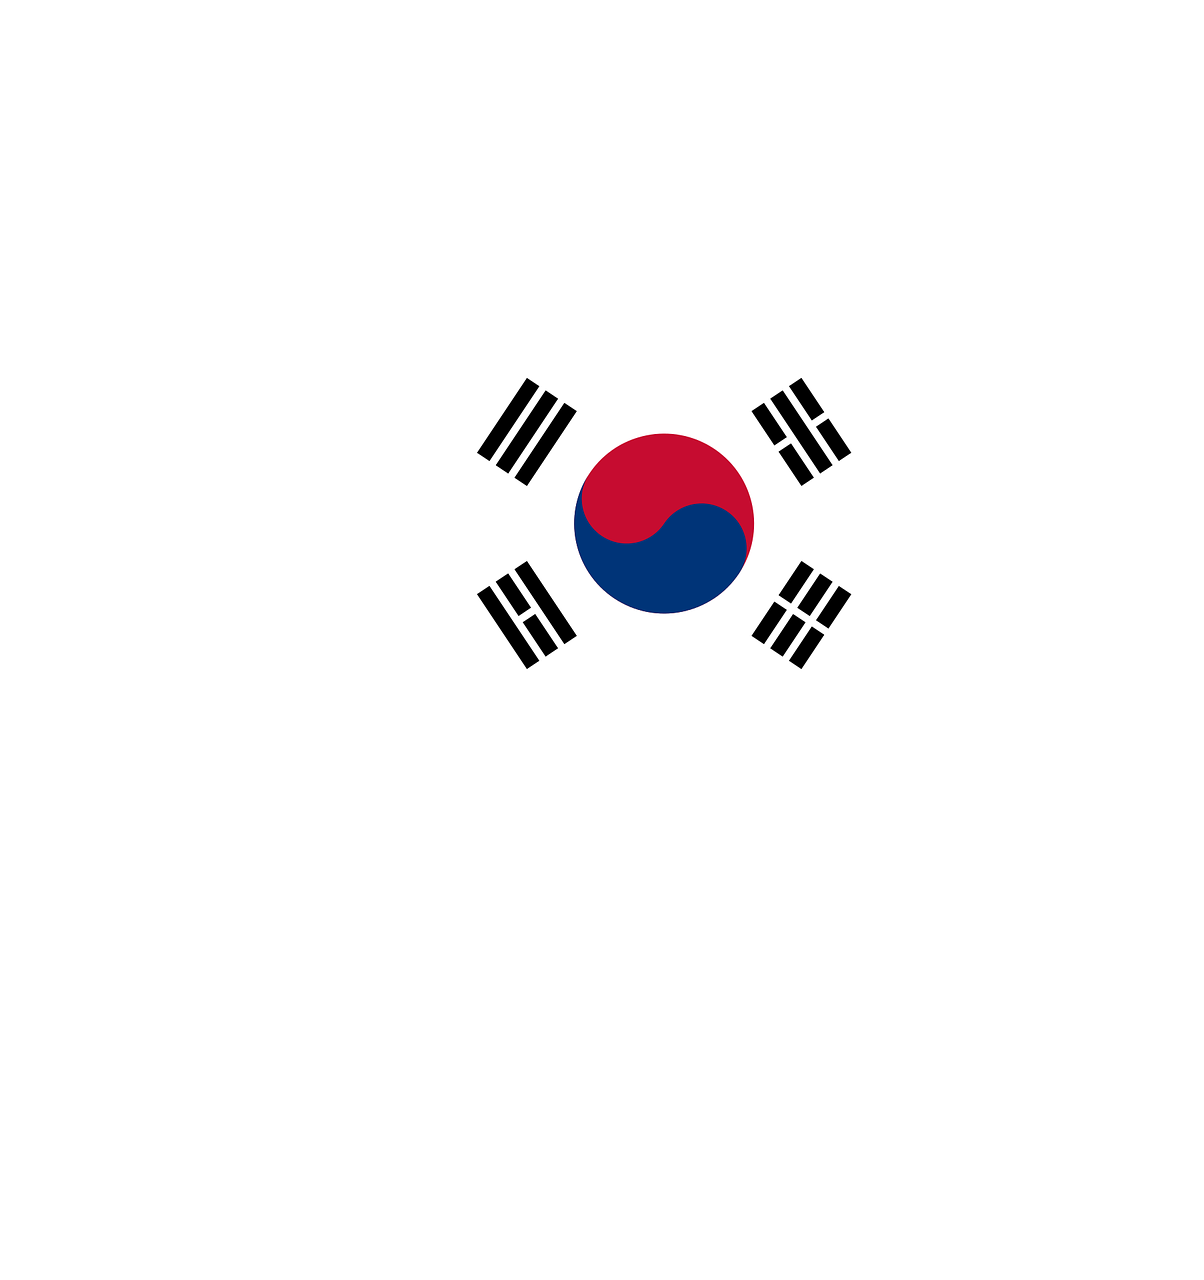 top 10 largest armies in the world in 2021 south korea